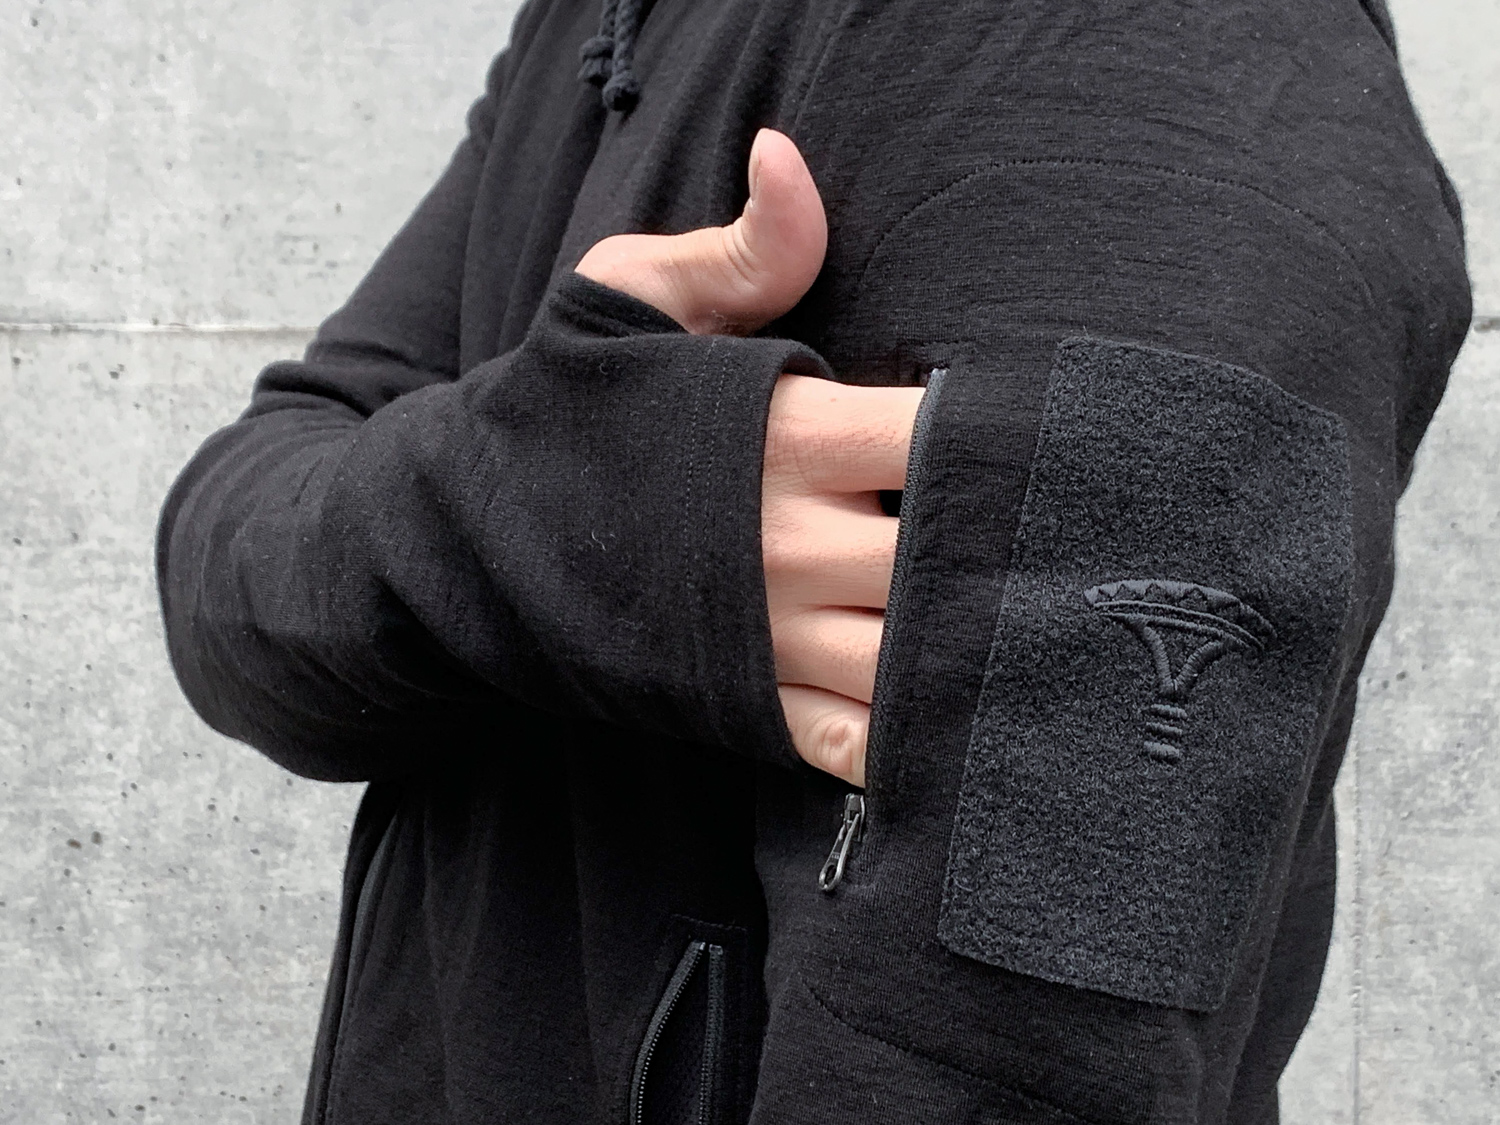 A black hoodie with more than enough pockets.